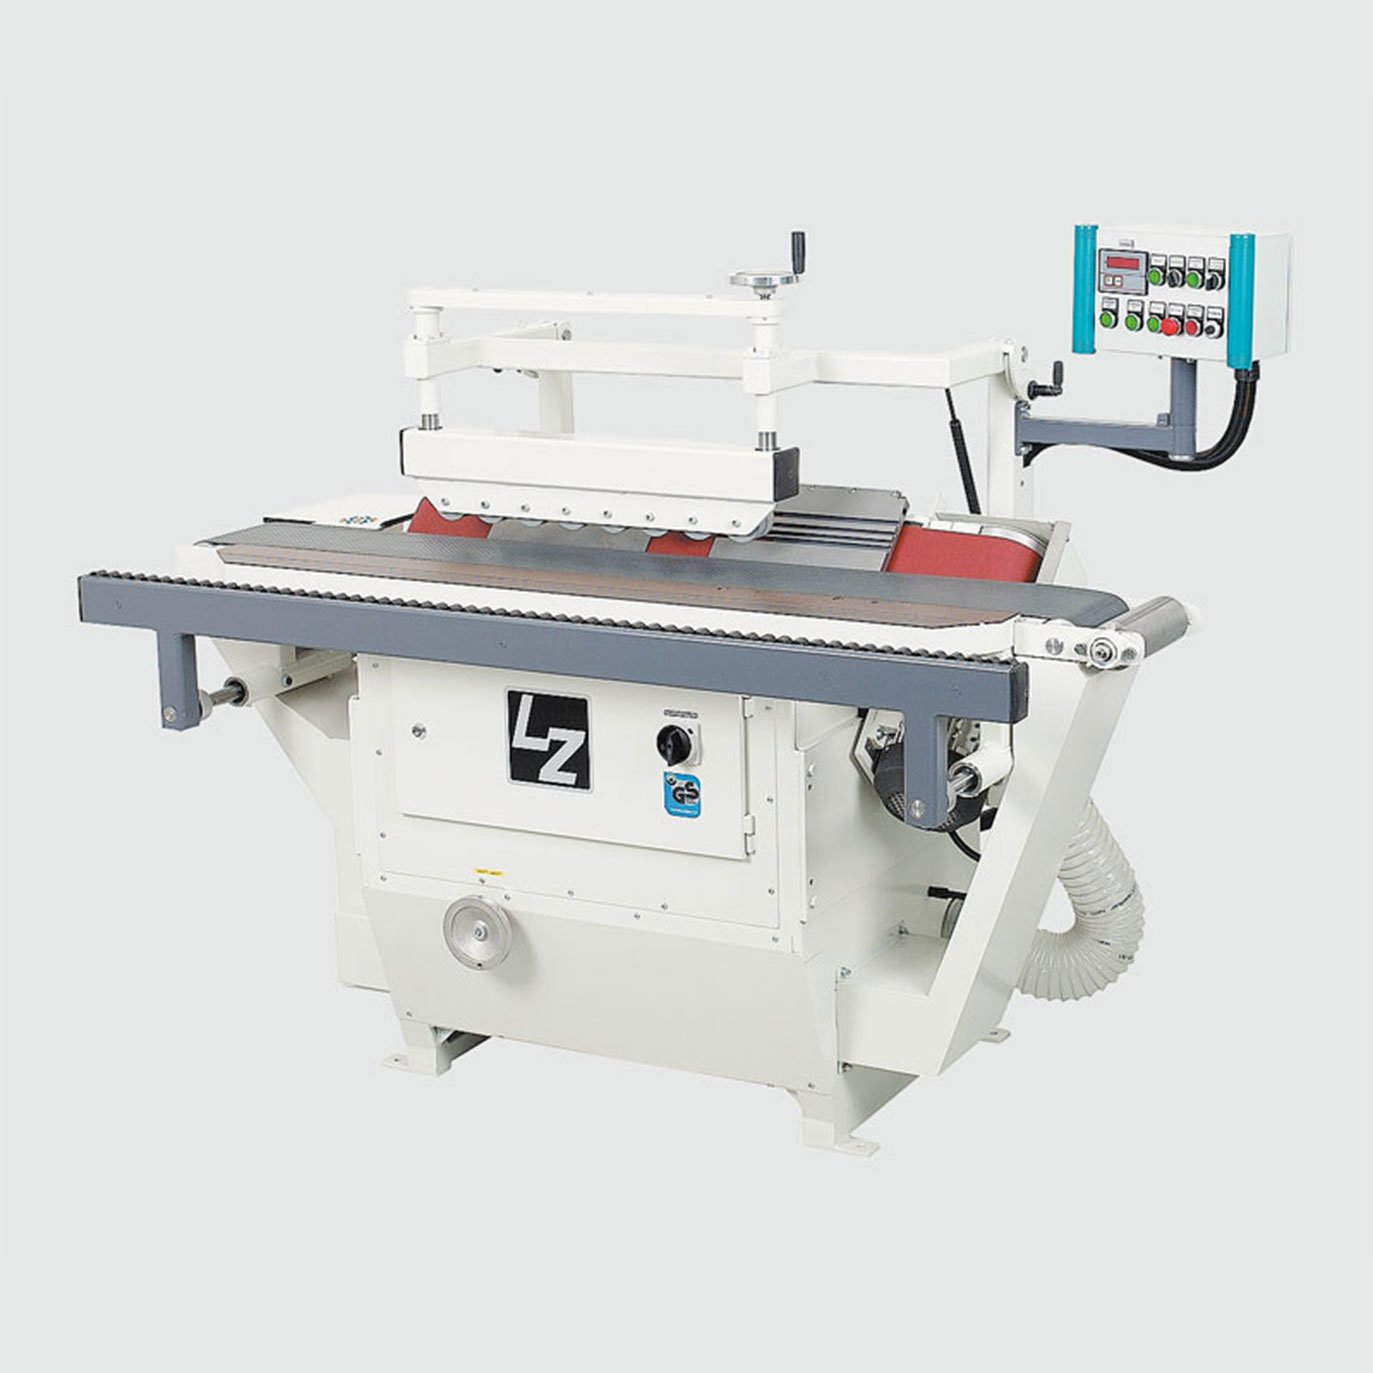 Picture of Langzauner Precision Edge Sander